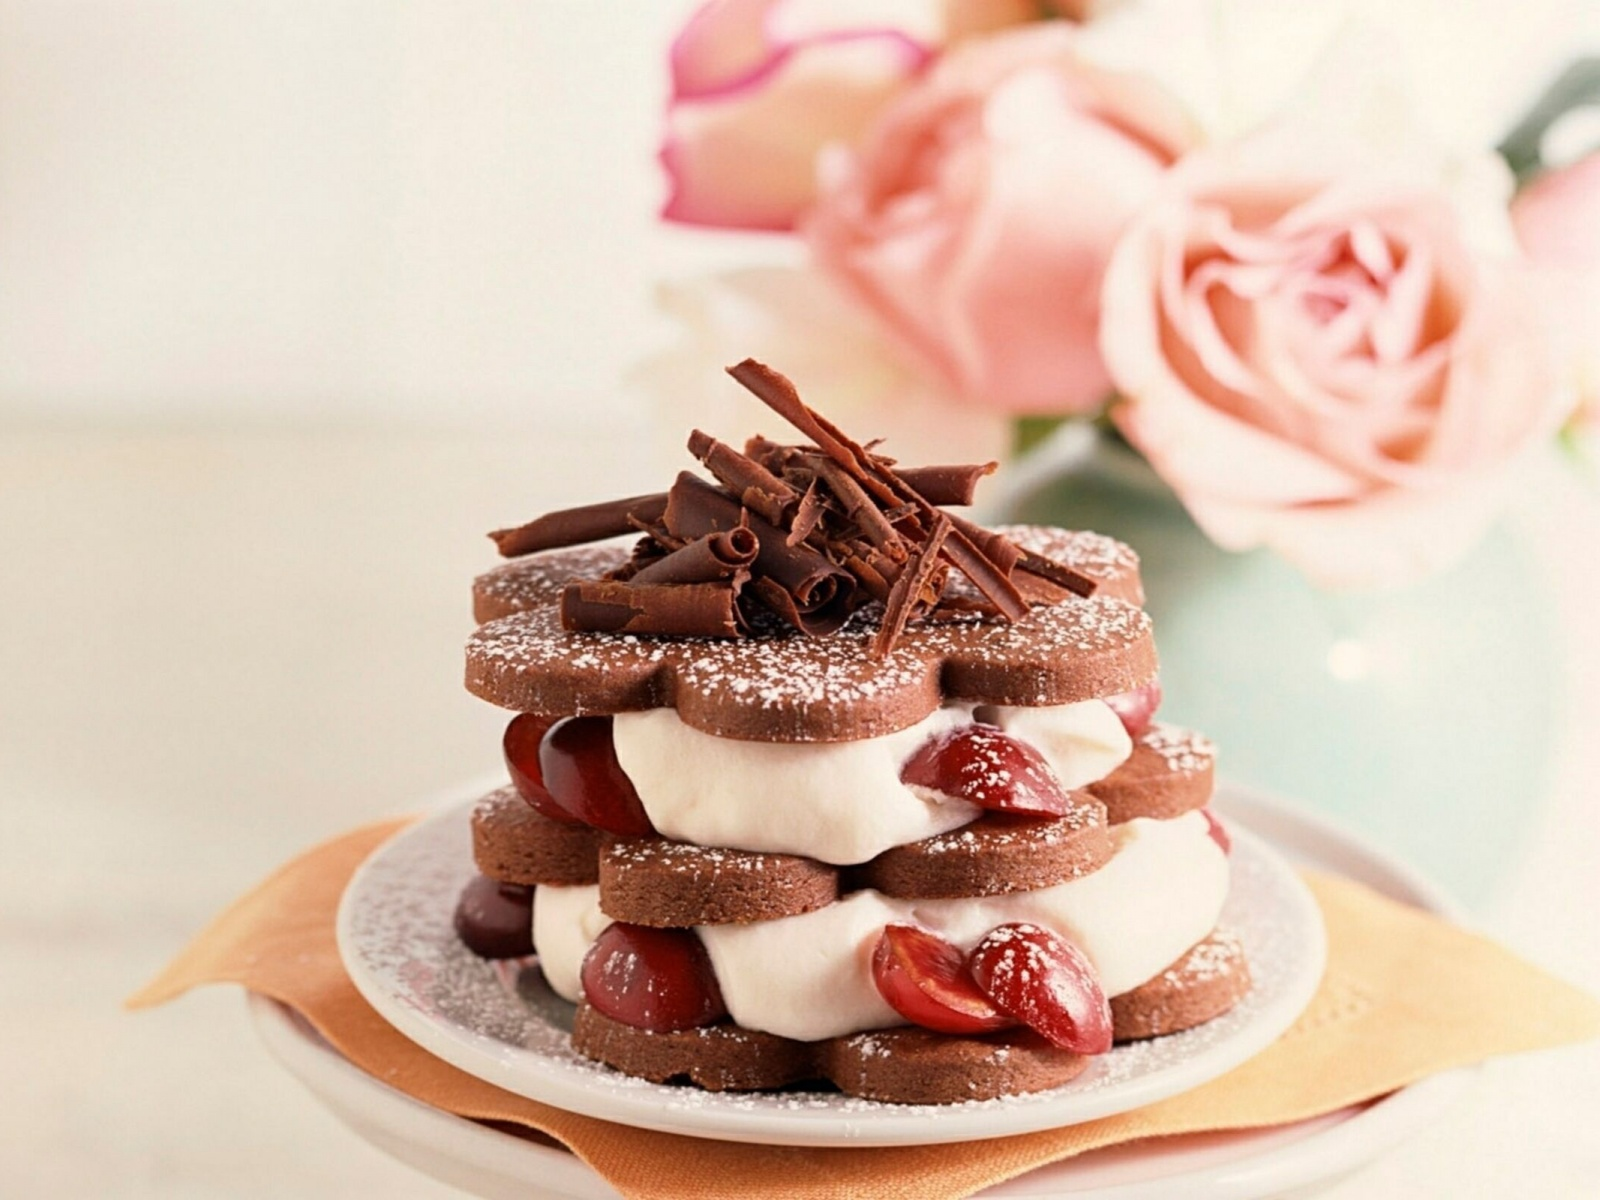 Description: The Wallpaper above is Dessert Cake Wallpaper in Resolution 1600x1200. Choose your Resolution and Download Dessert Cake Wallpaper